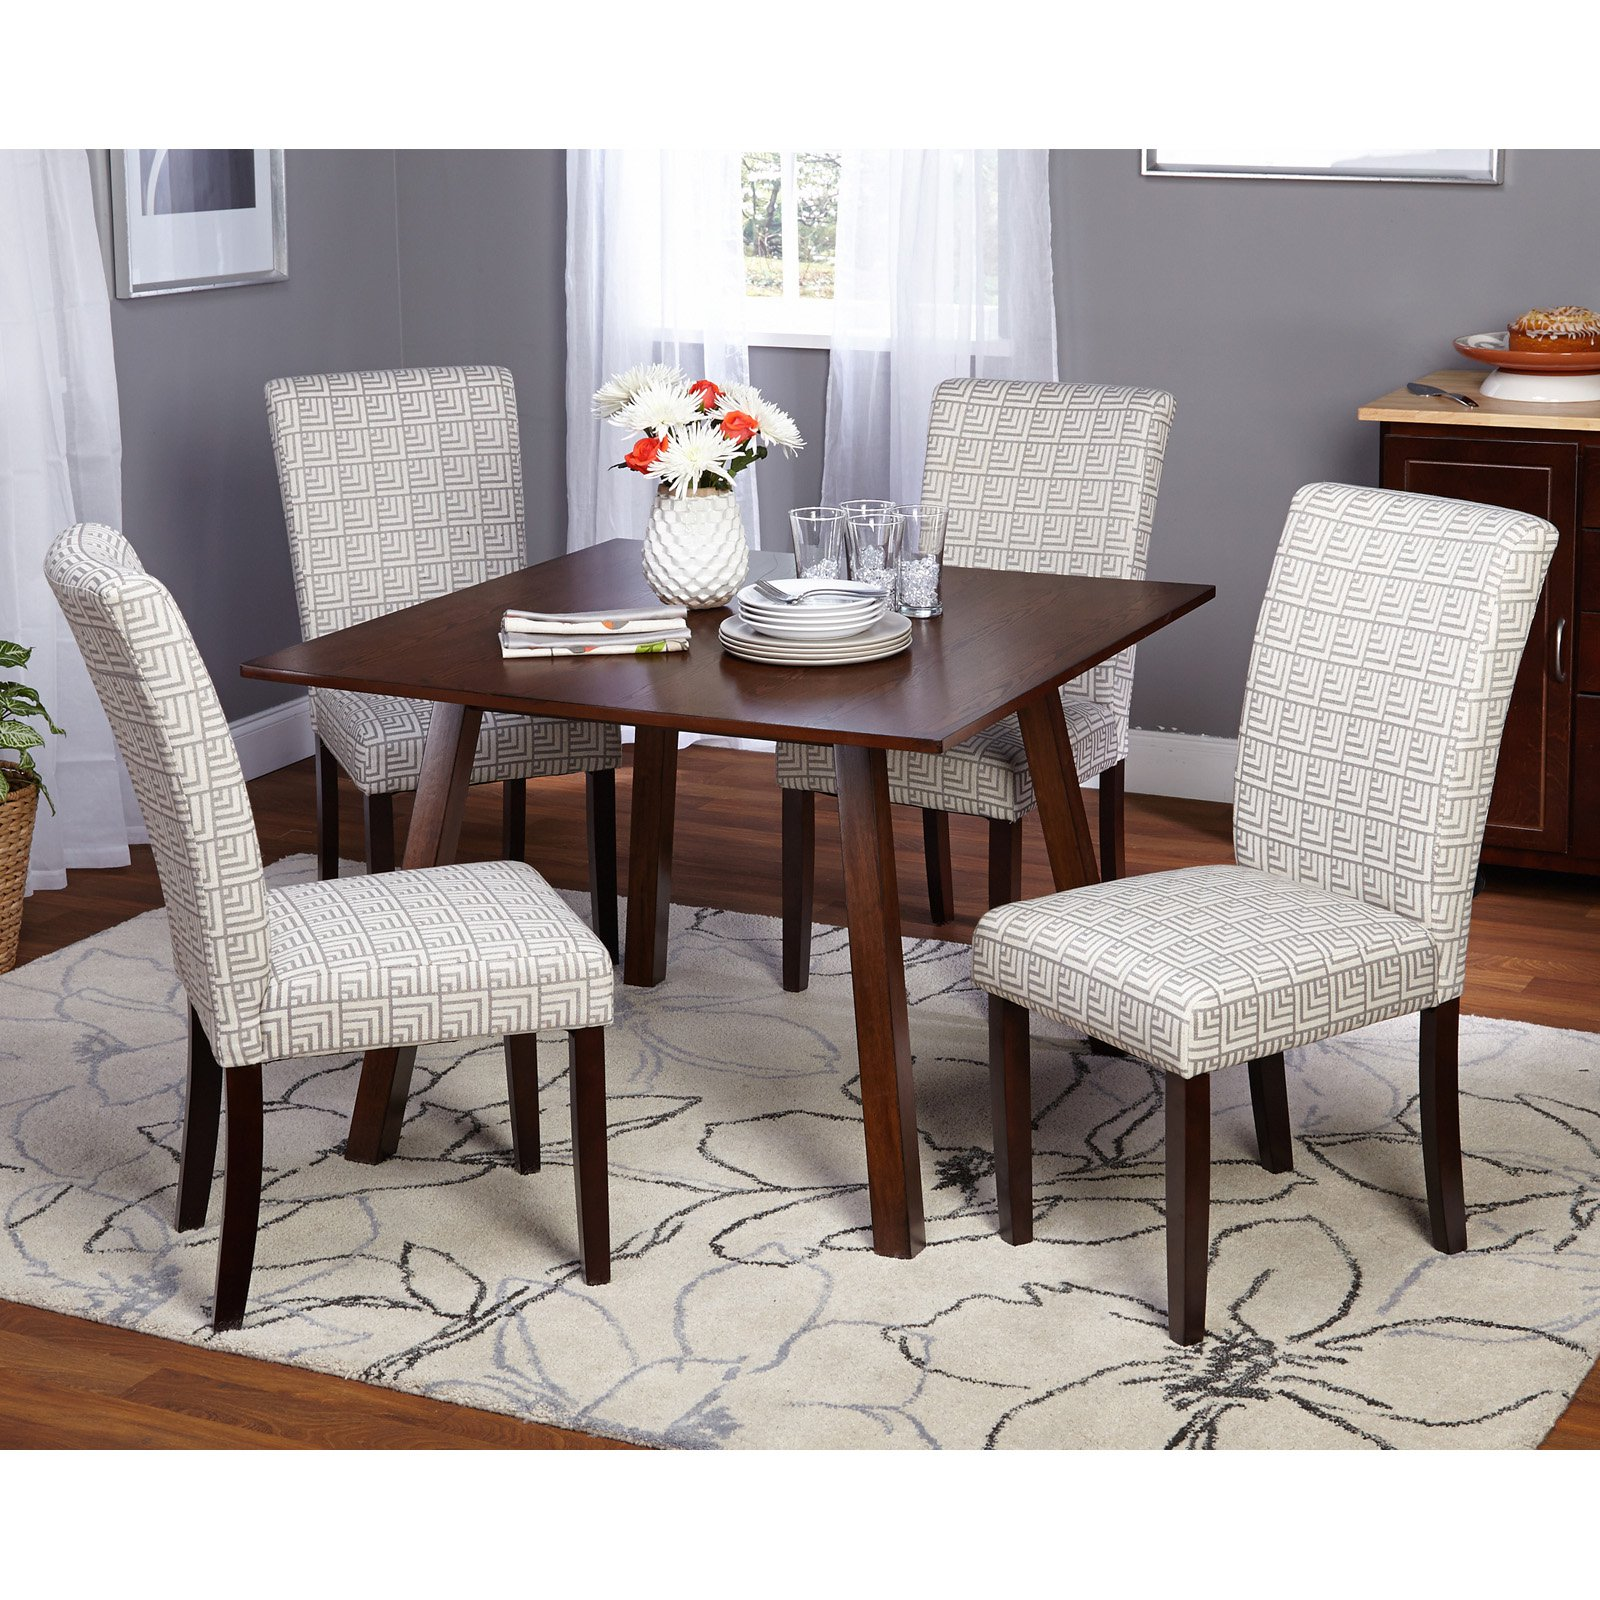 Target Marketing Systems Laurel 5 Piece Dining Table Set